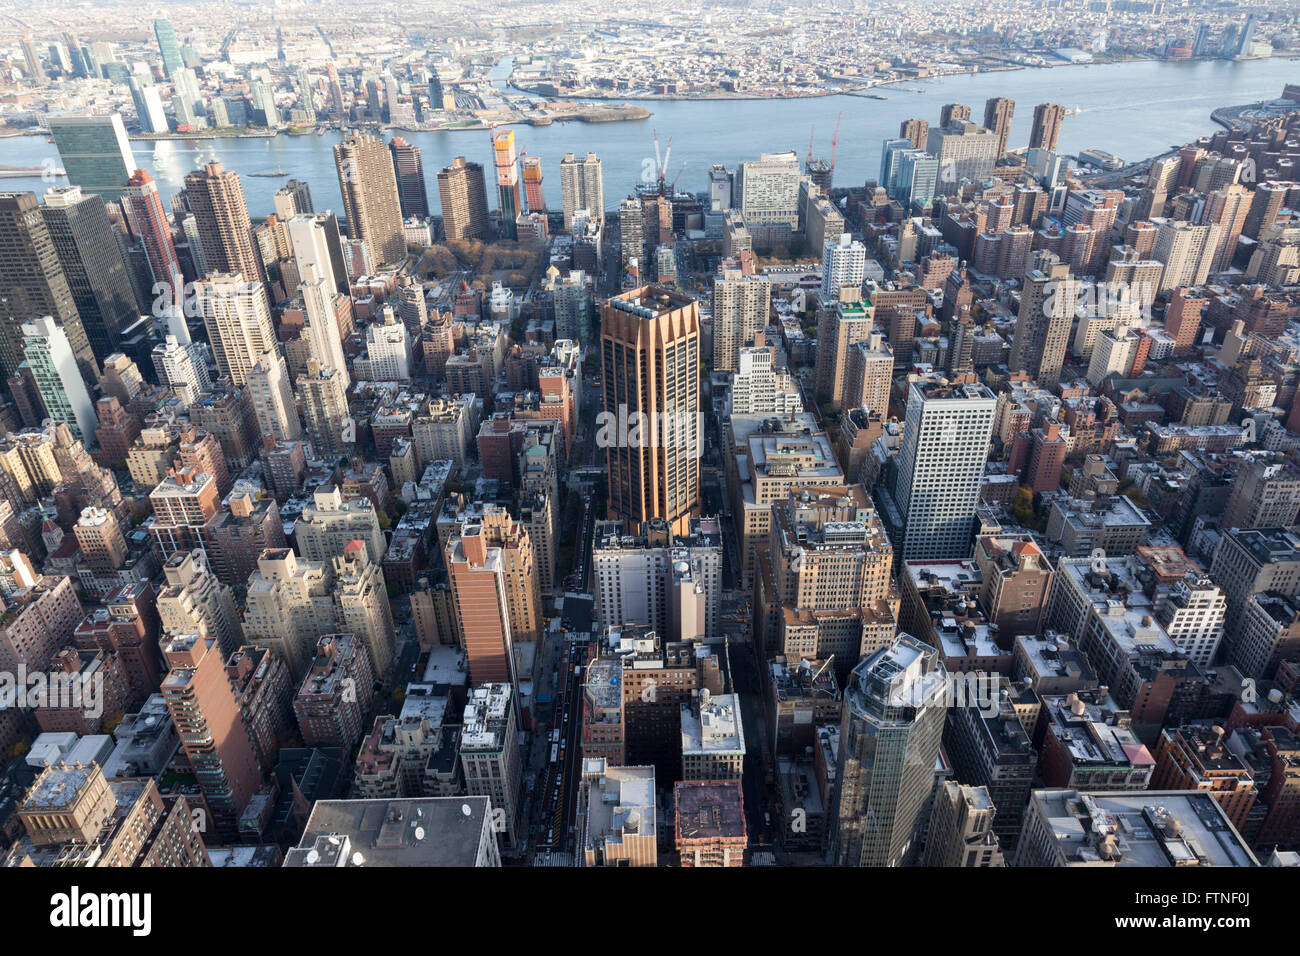 New York Skyline vom Empire State Building, New York, Amerika Stockbild